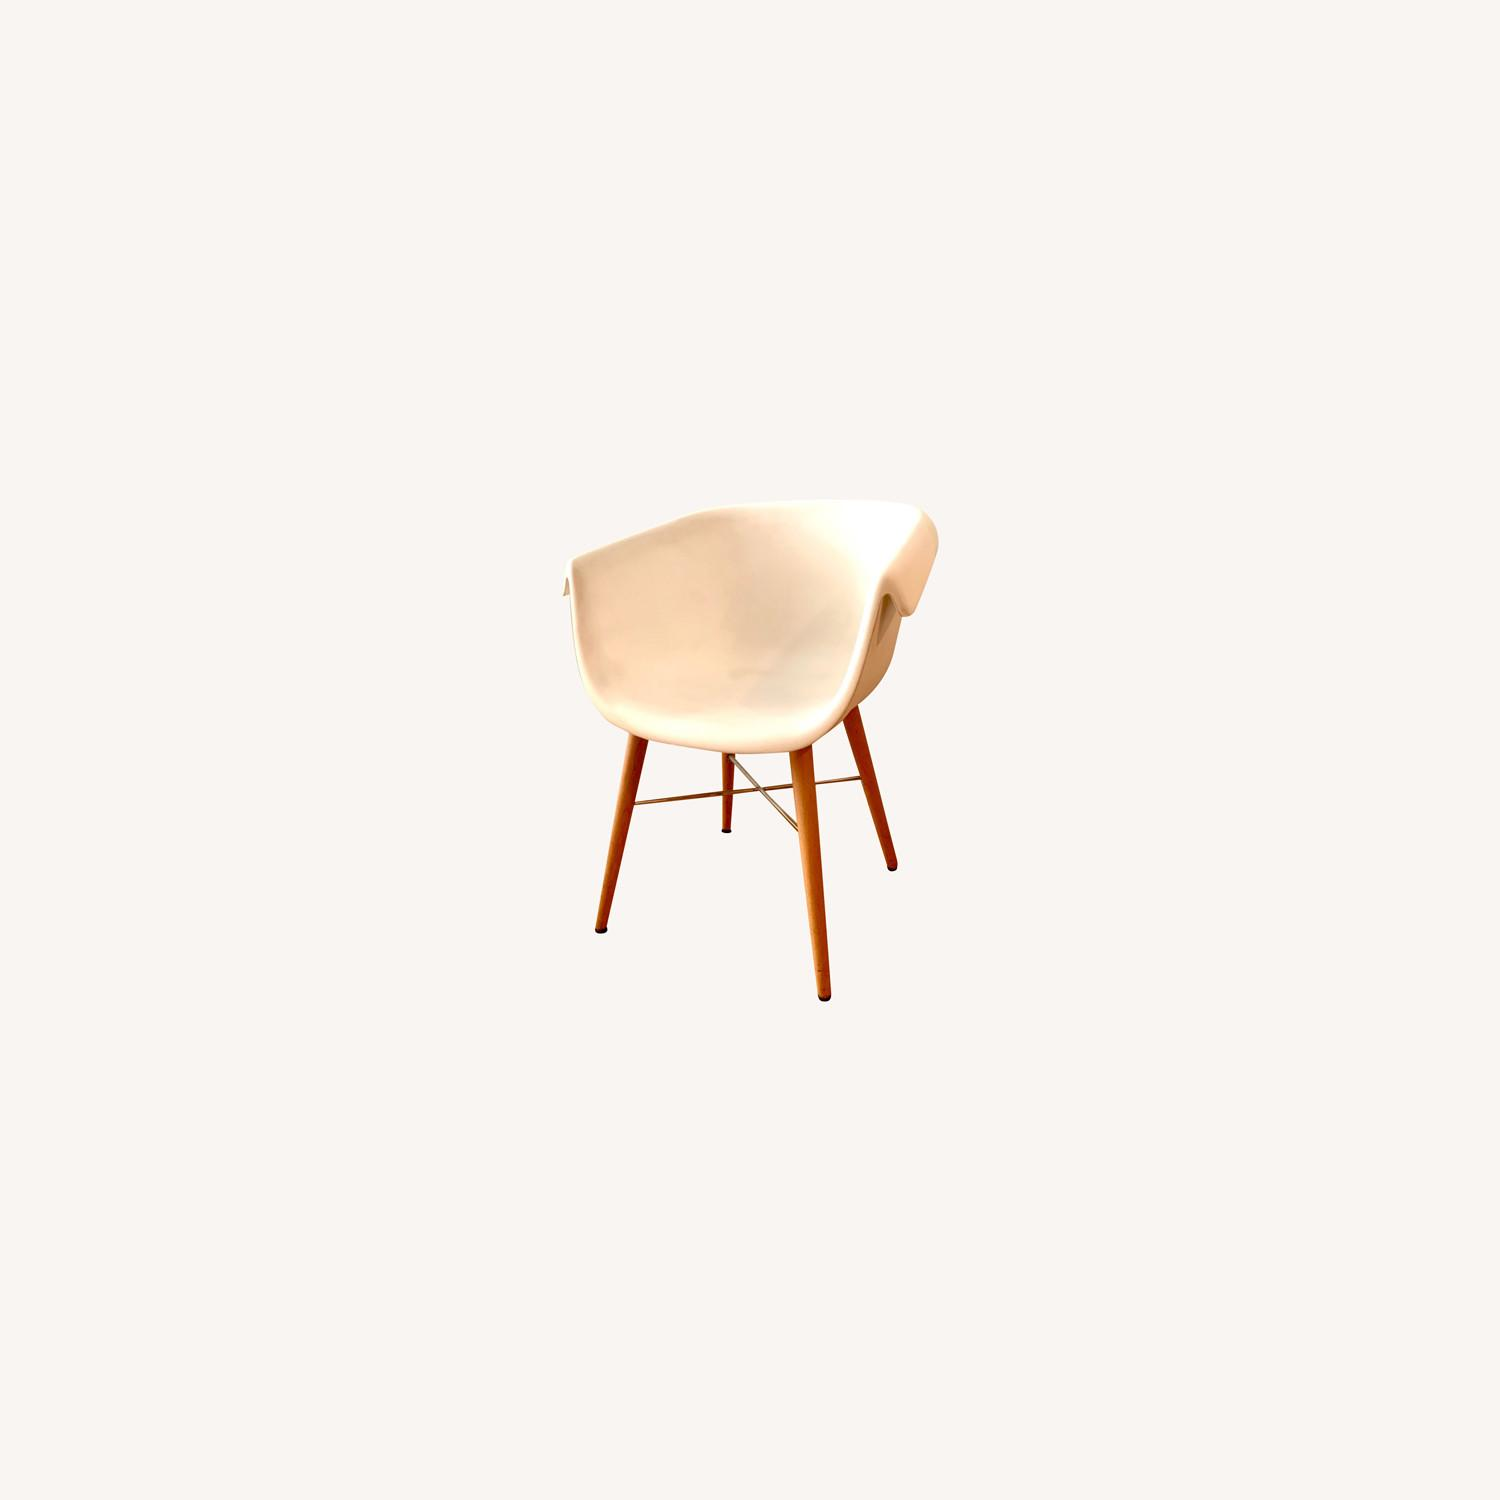 Collier Casprini Dining Chairs by Orlandini - image-0